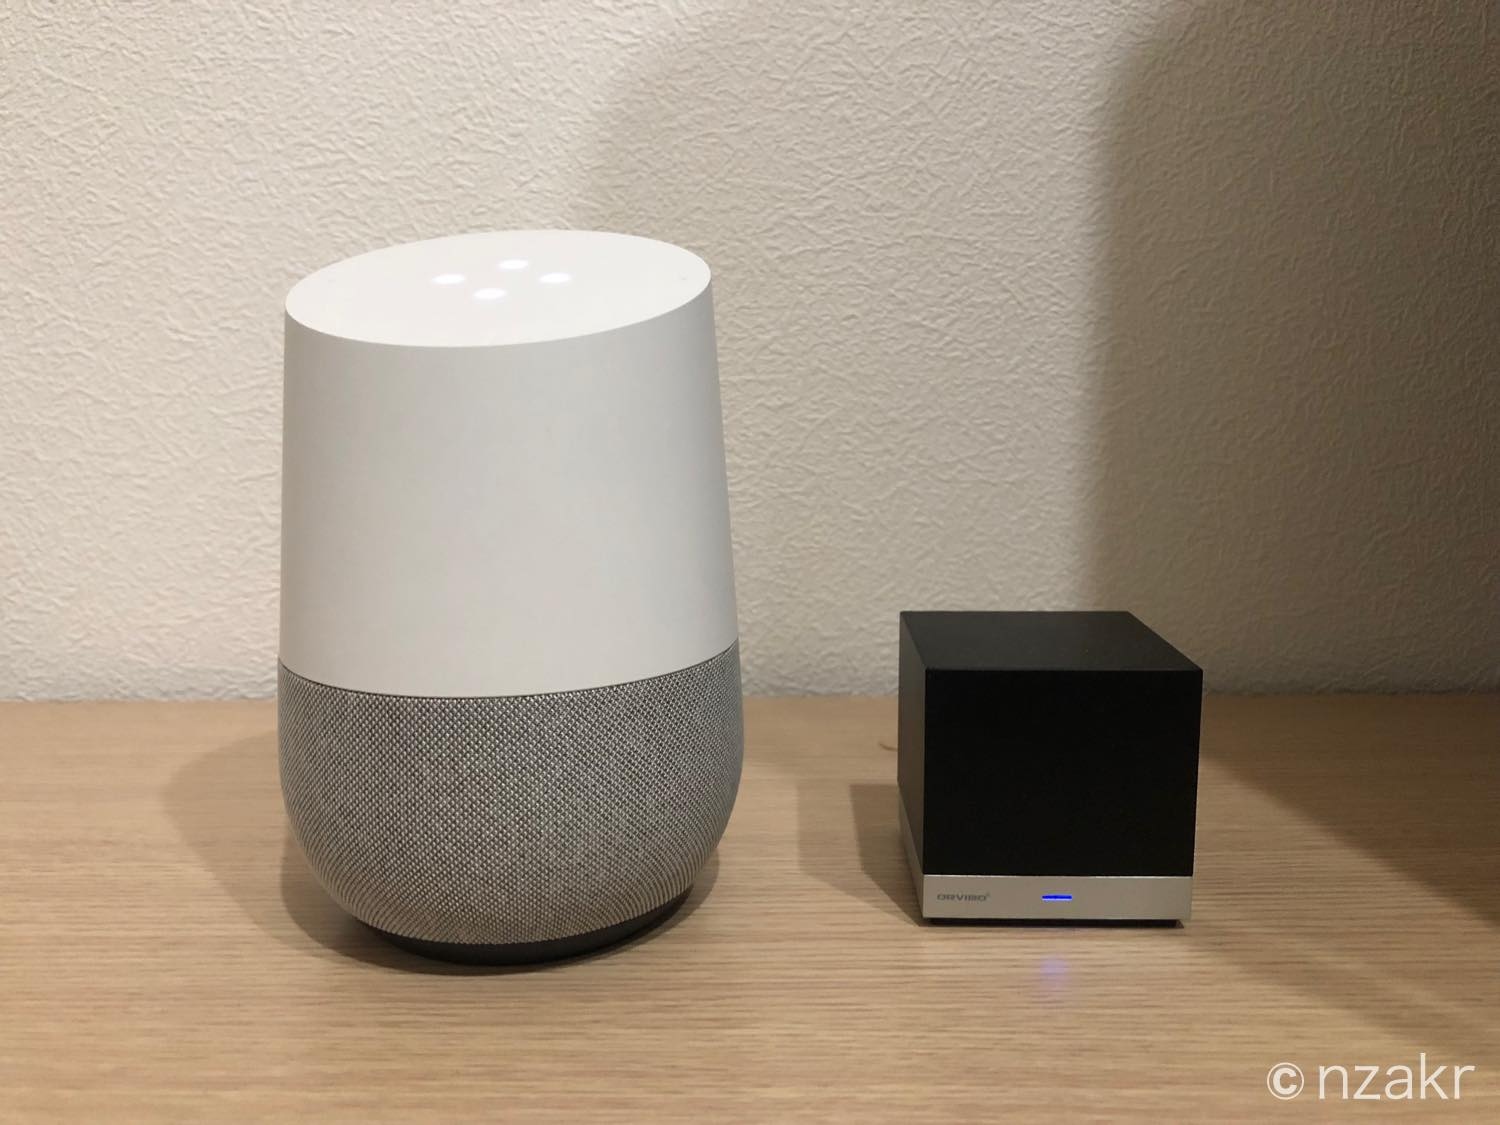 Google HomeとMagic Cubeを並べて設置